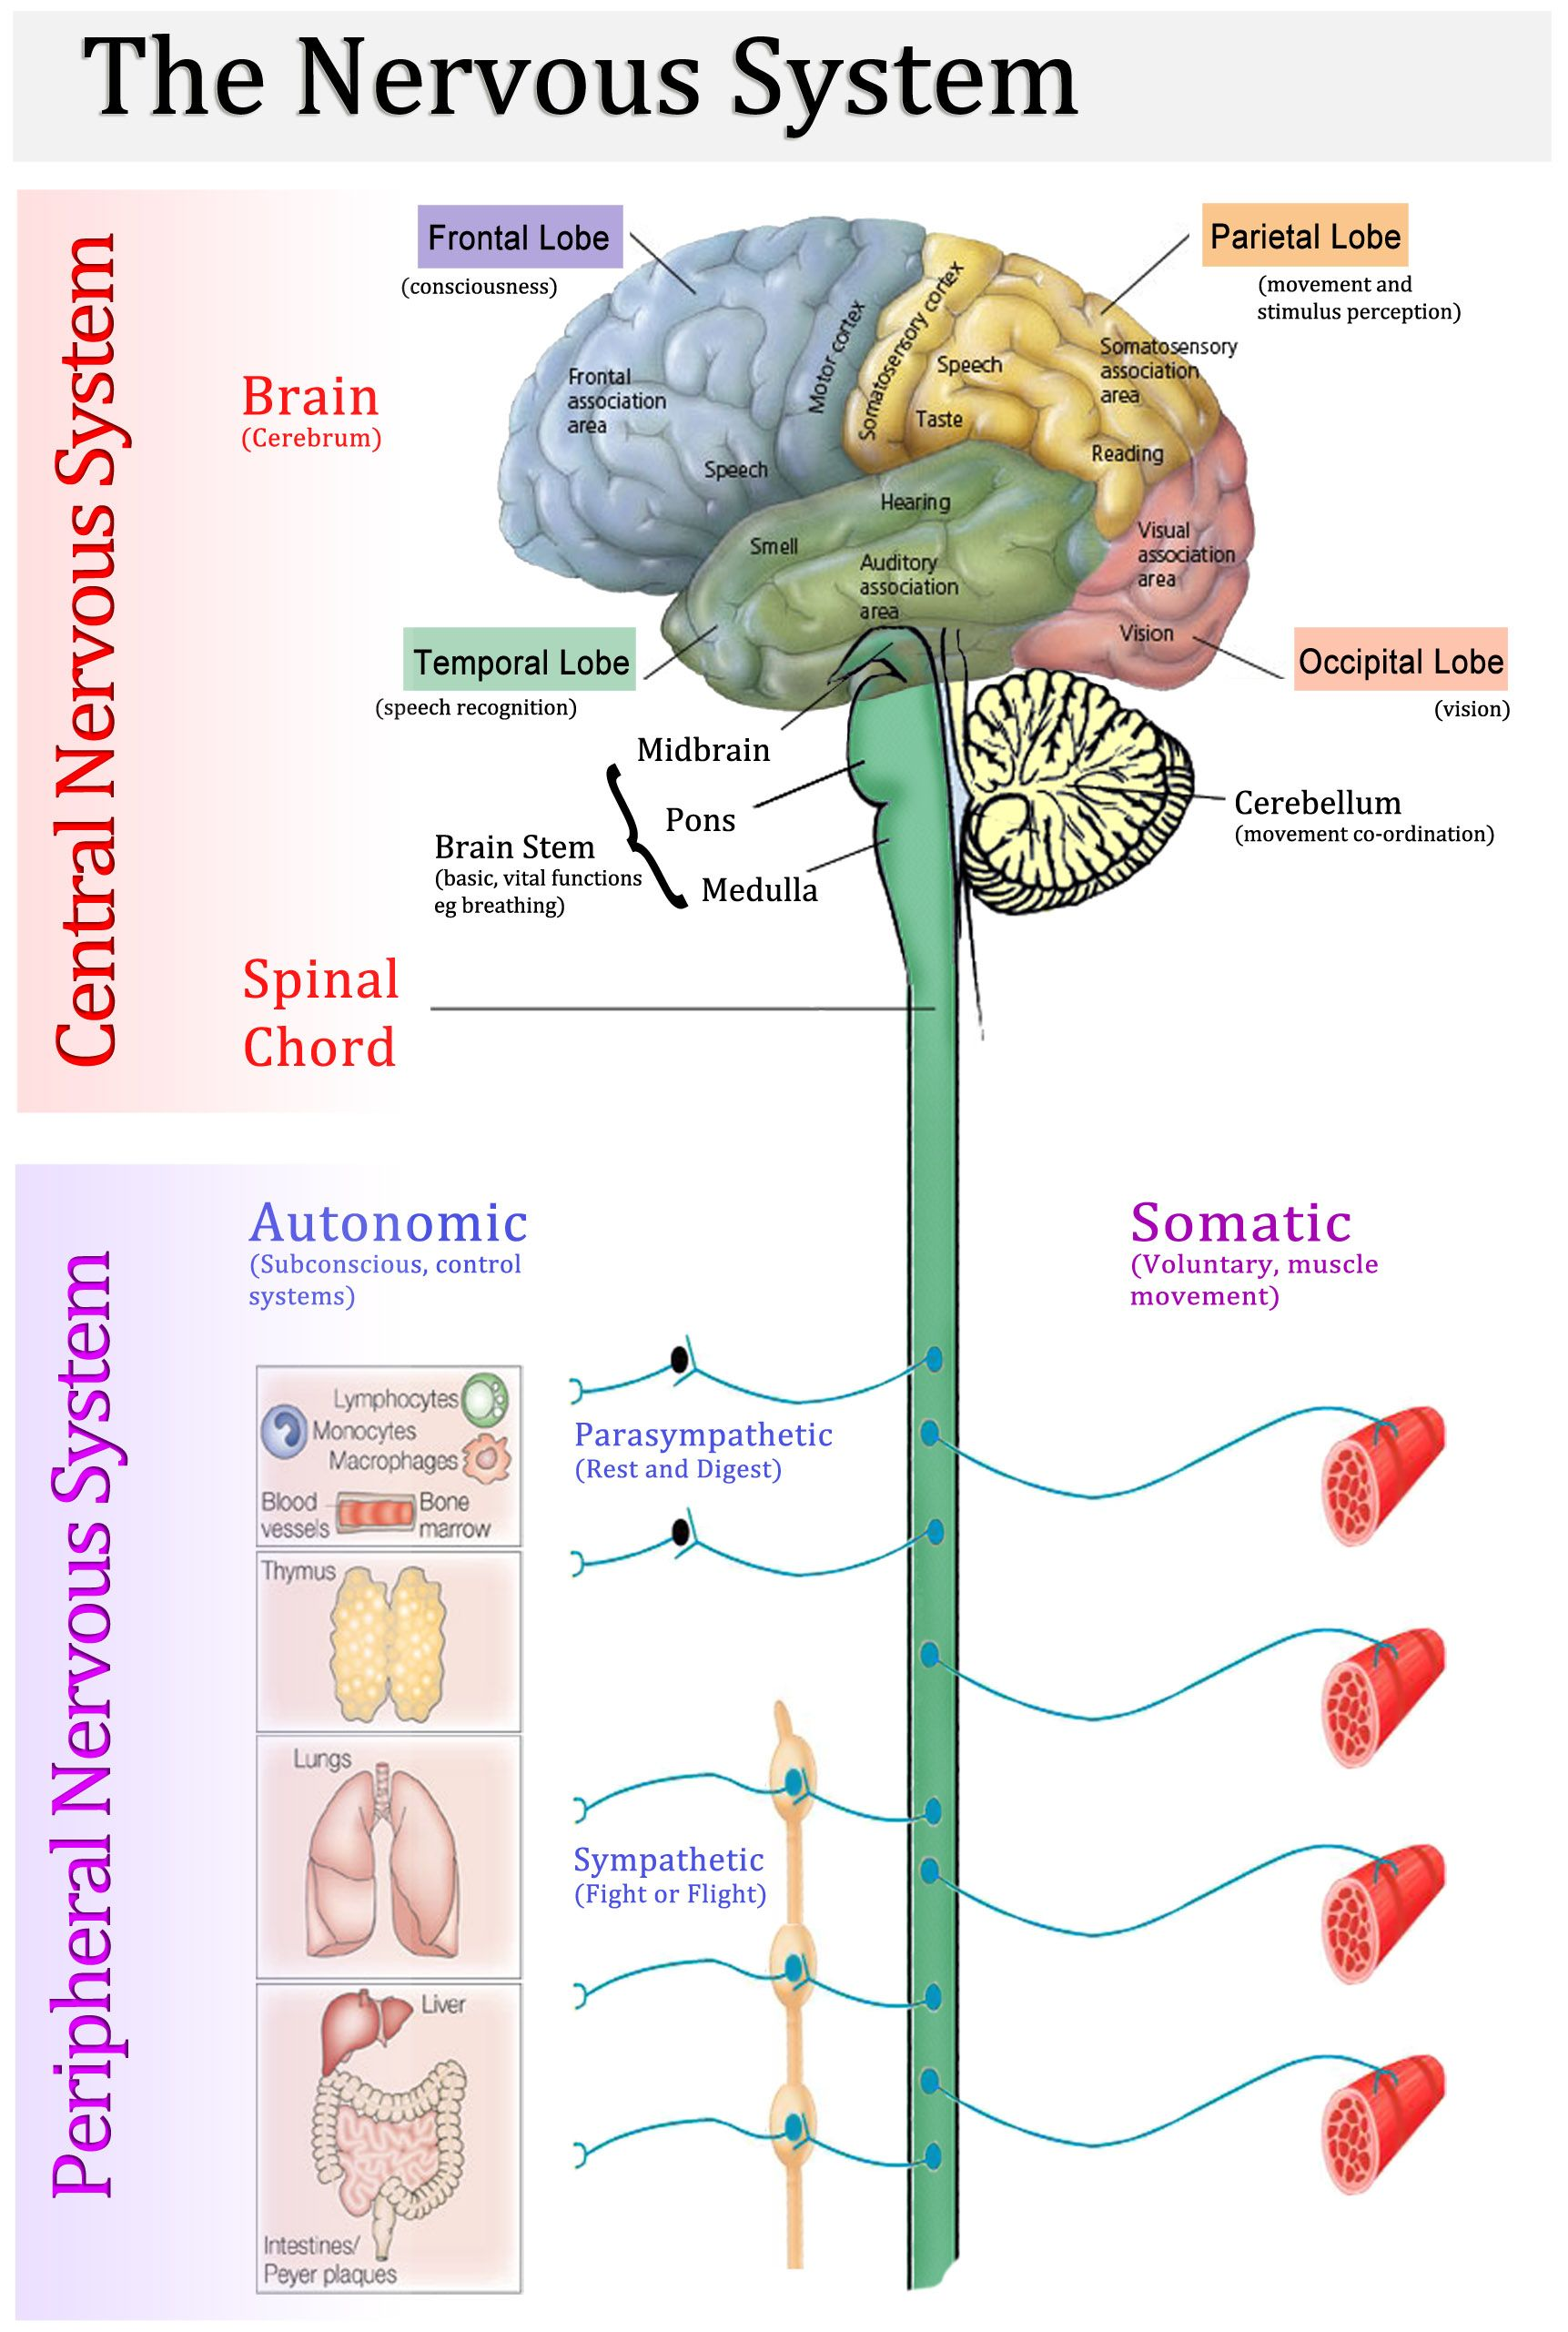 cns vs pns school (psychology and related fields) nervous system Gray and White Matter CNS Diagram